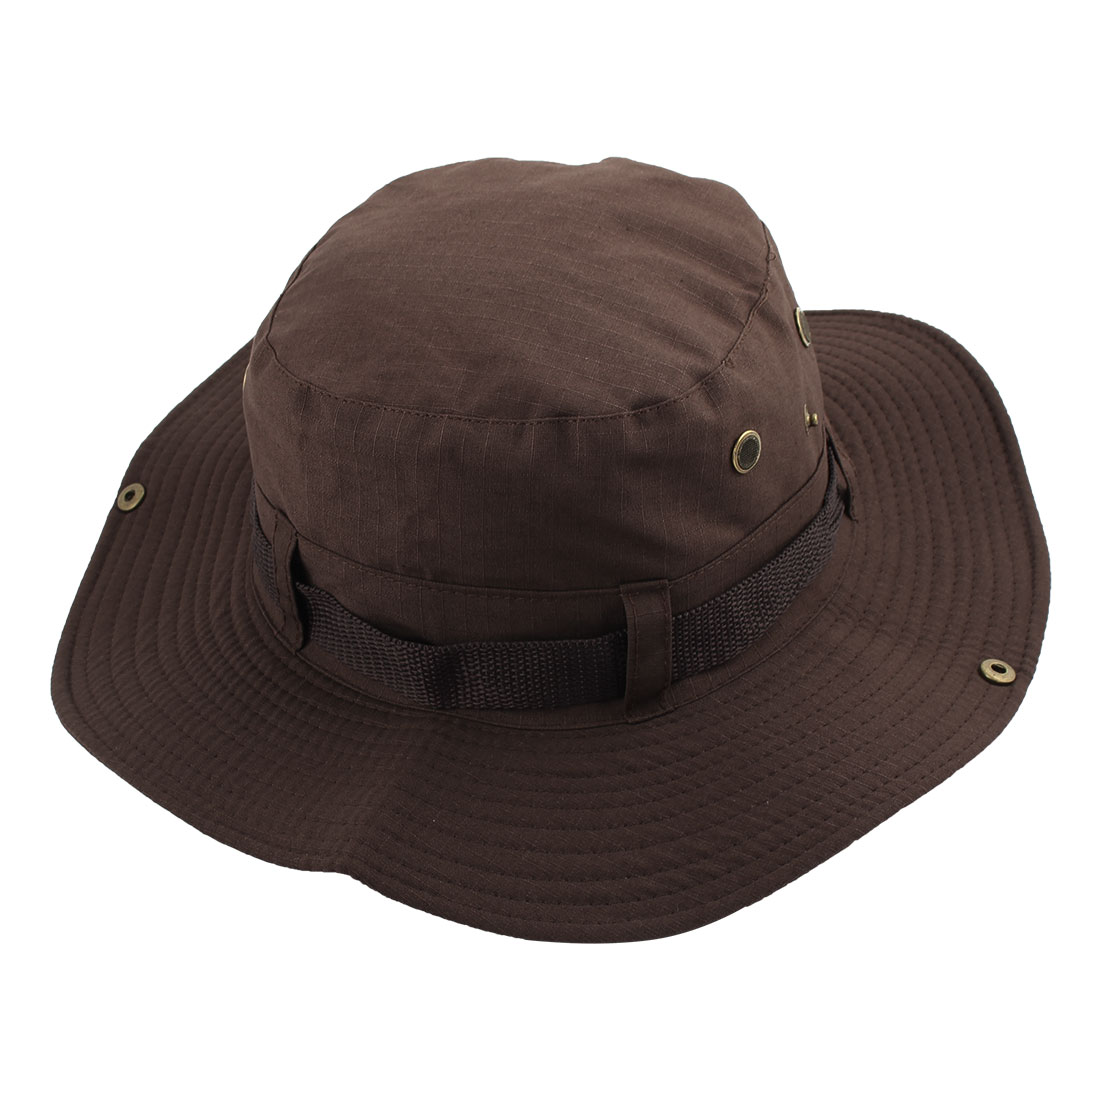 Fisherman Outdoor Sports Hiking Hunting Adjustable Strap Wide Brim Sun Protector Bucket Summer Cap Fishing Hat Coffee Color